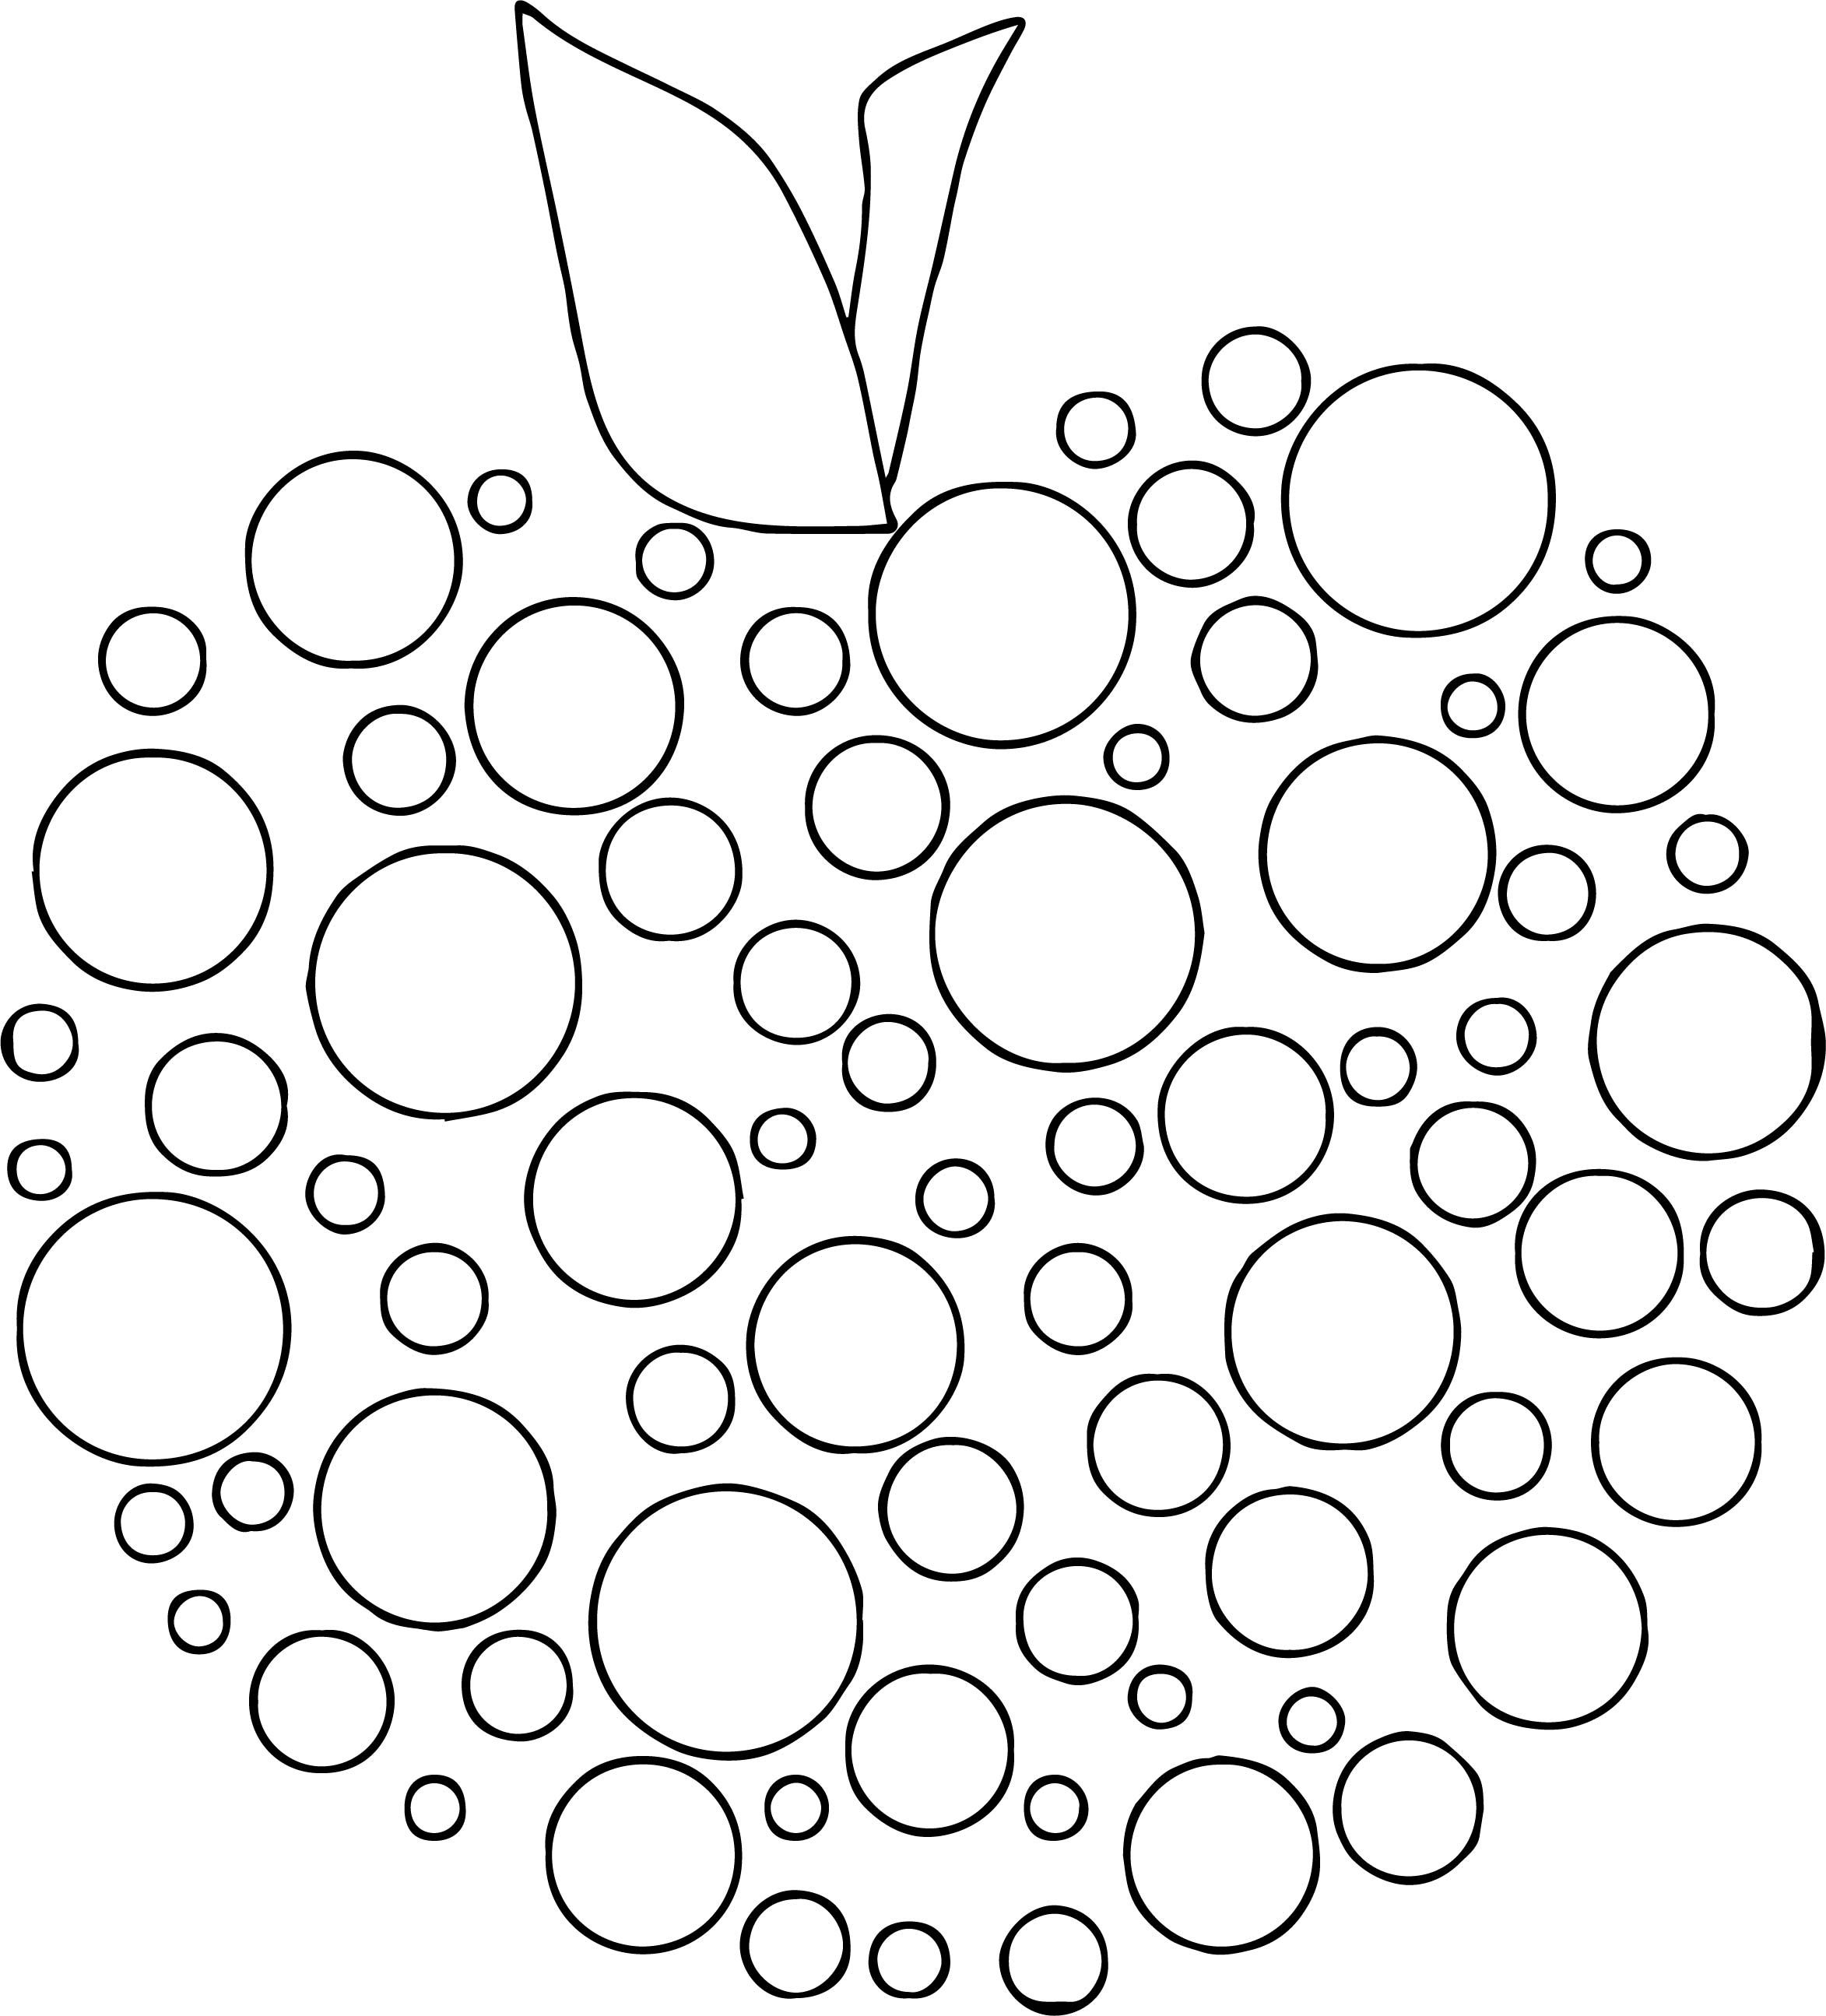 dot to dot colouring sheets connect the dots coloring page for kids coloring page base sheets dot colouring to dot